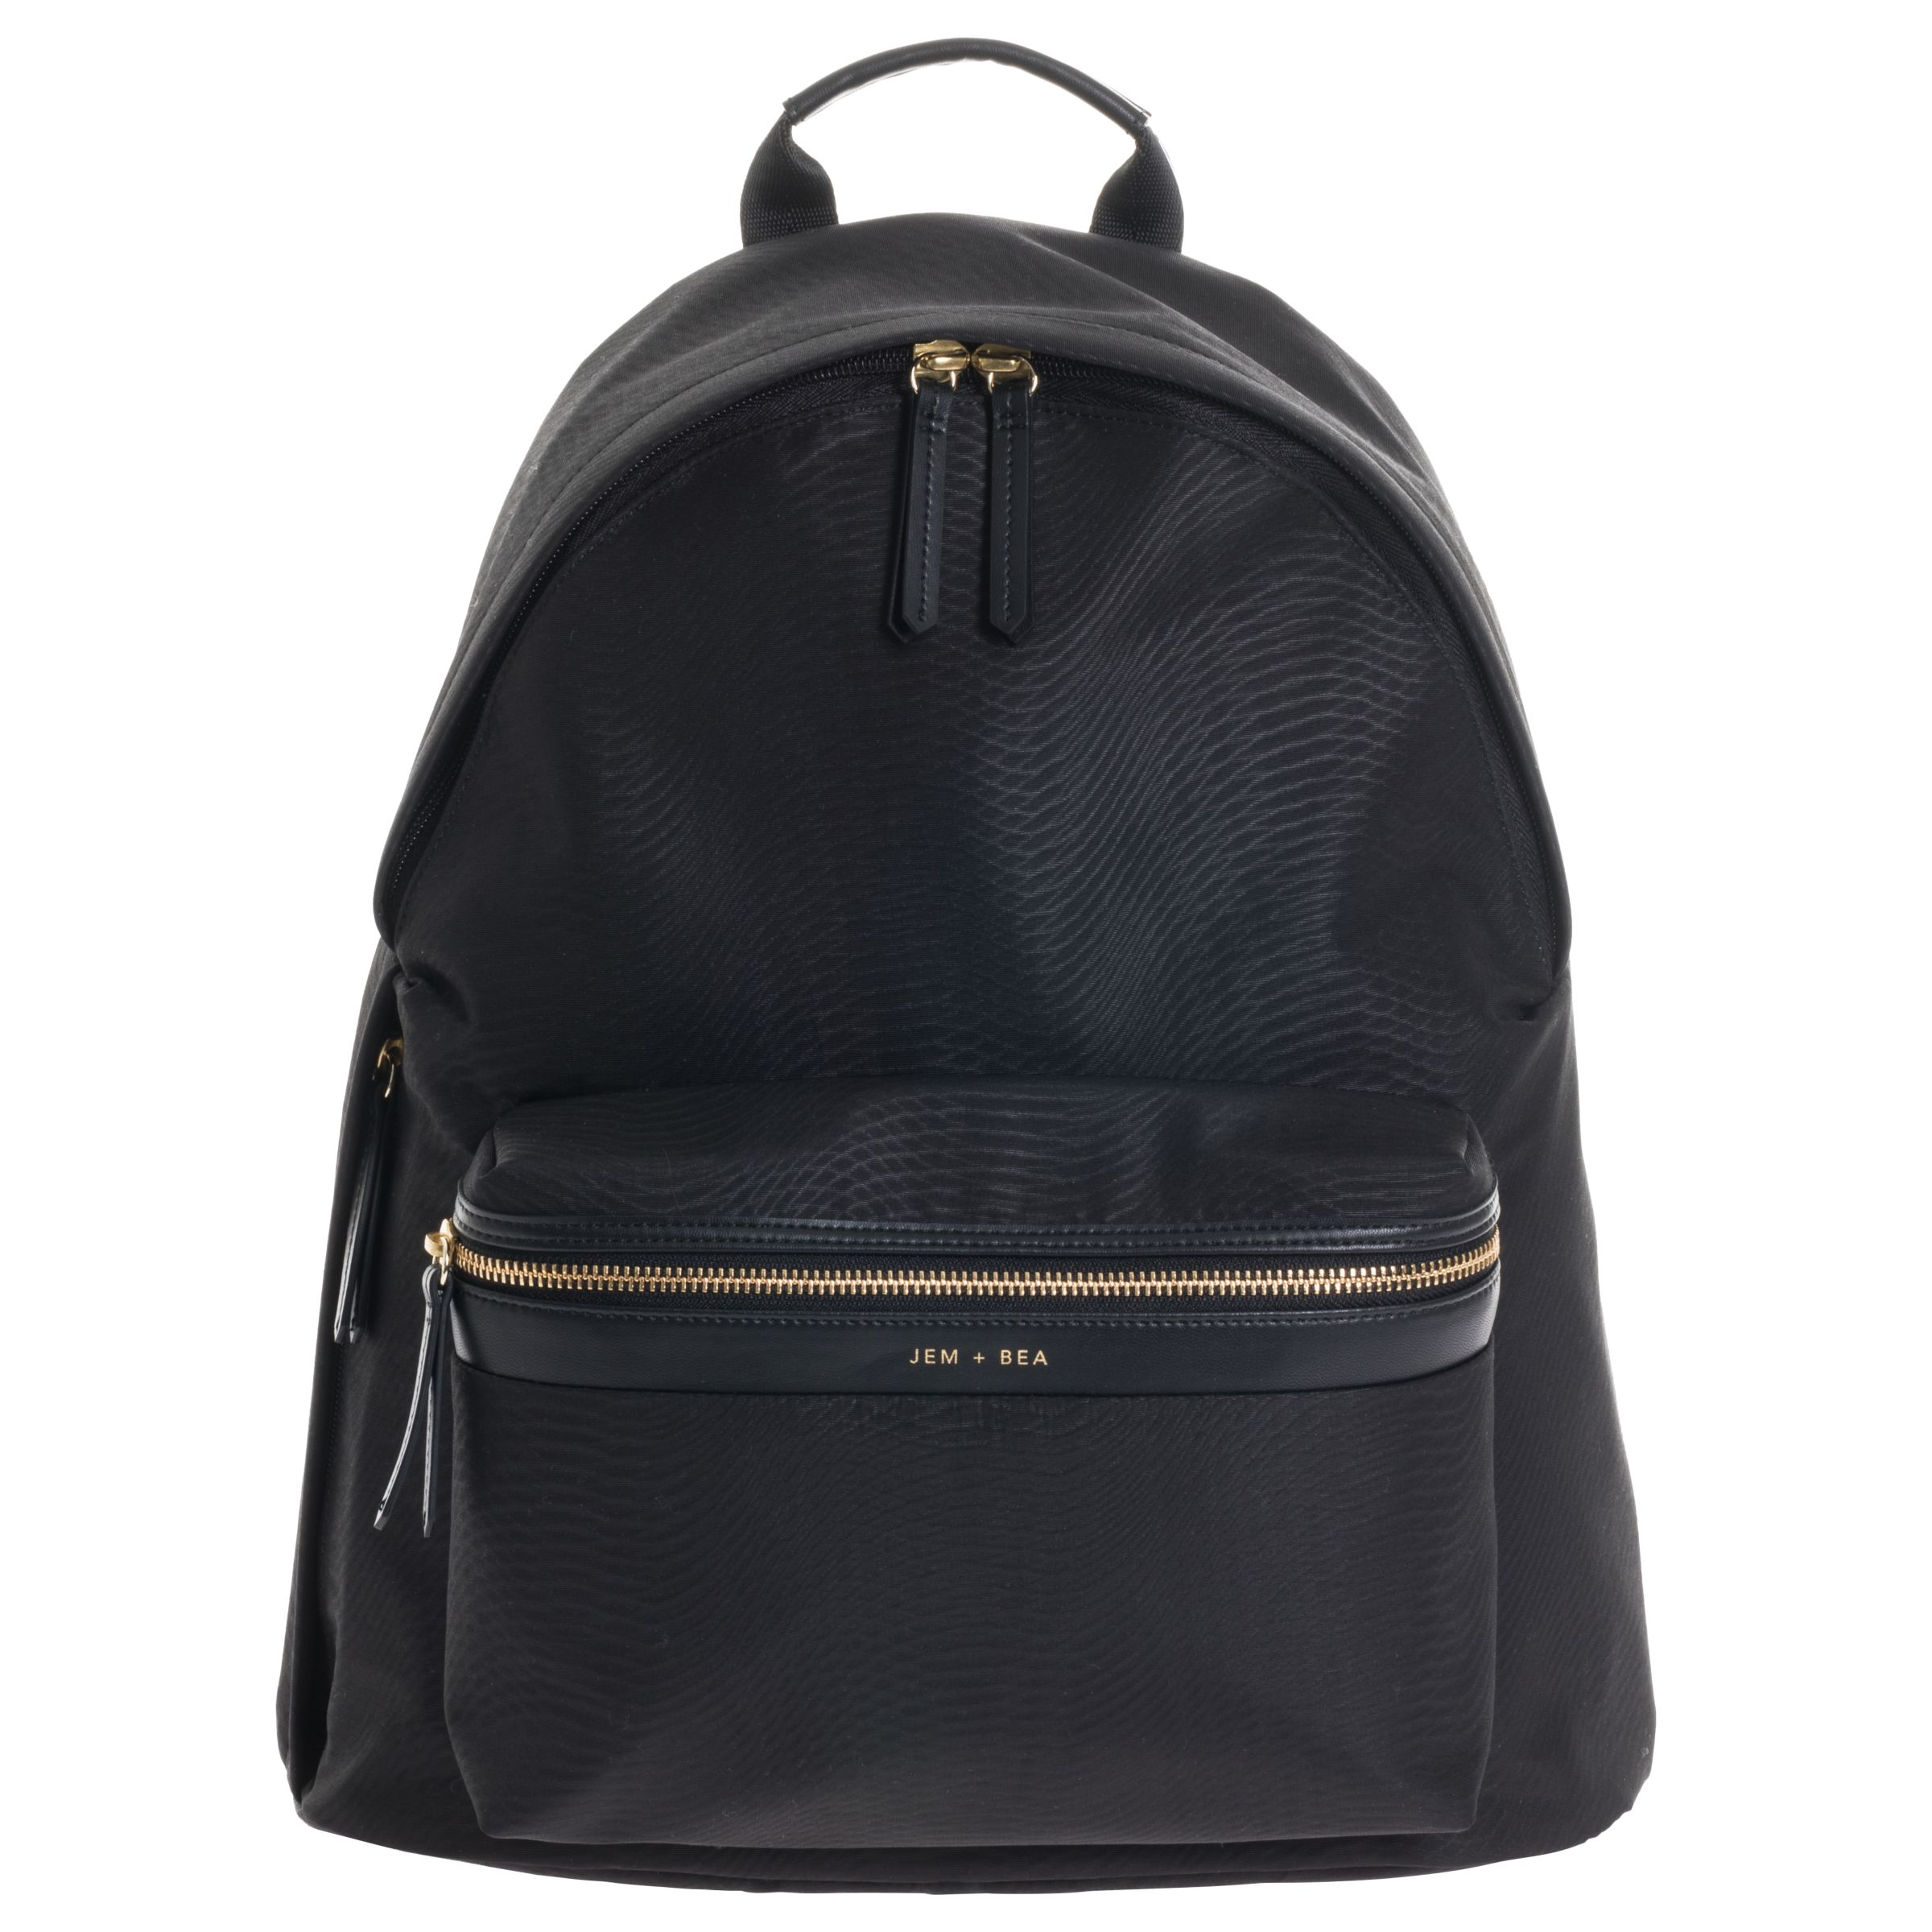 Jem + Bea JEM + BEA Jamie Backpack, Black